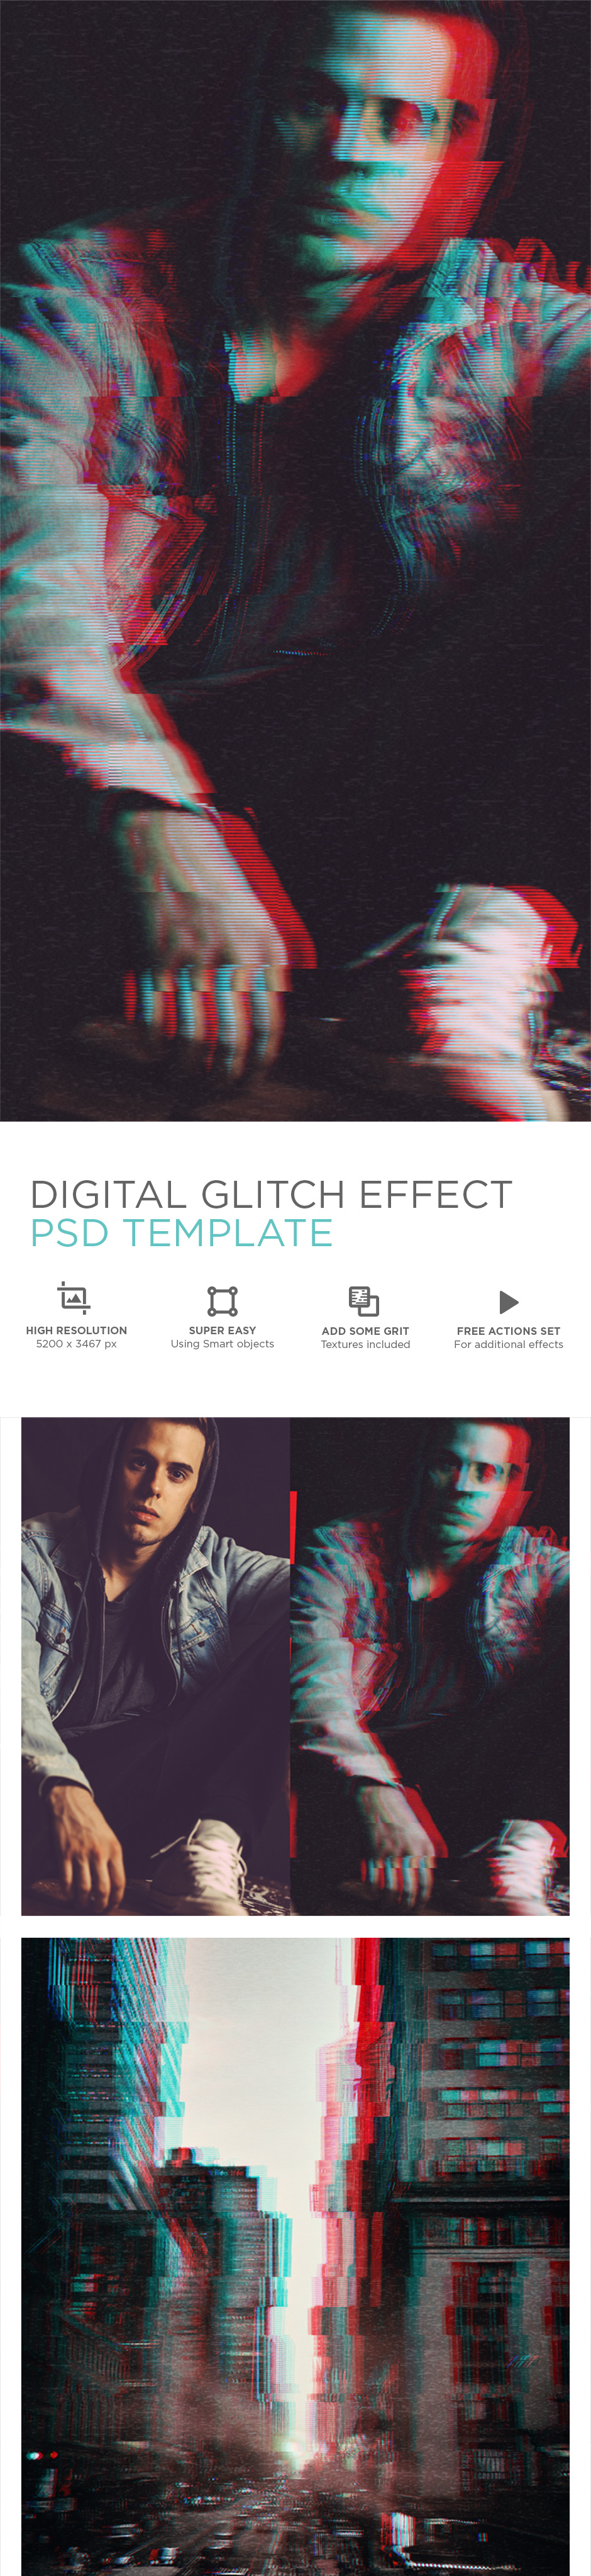 Digital Glitch Effect PSD Templates